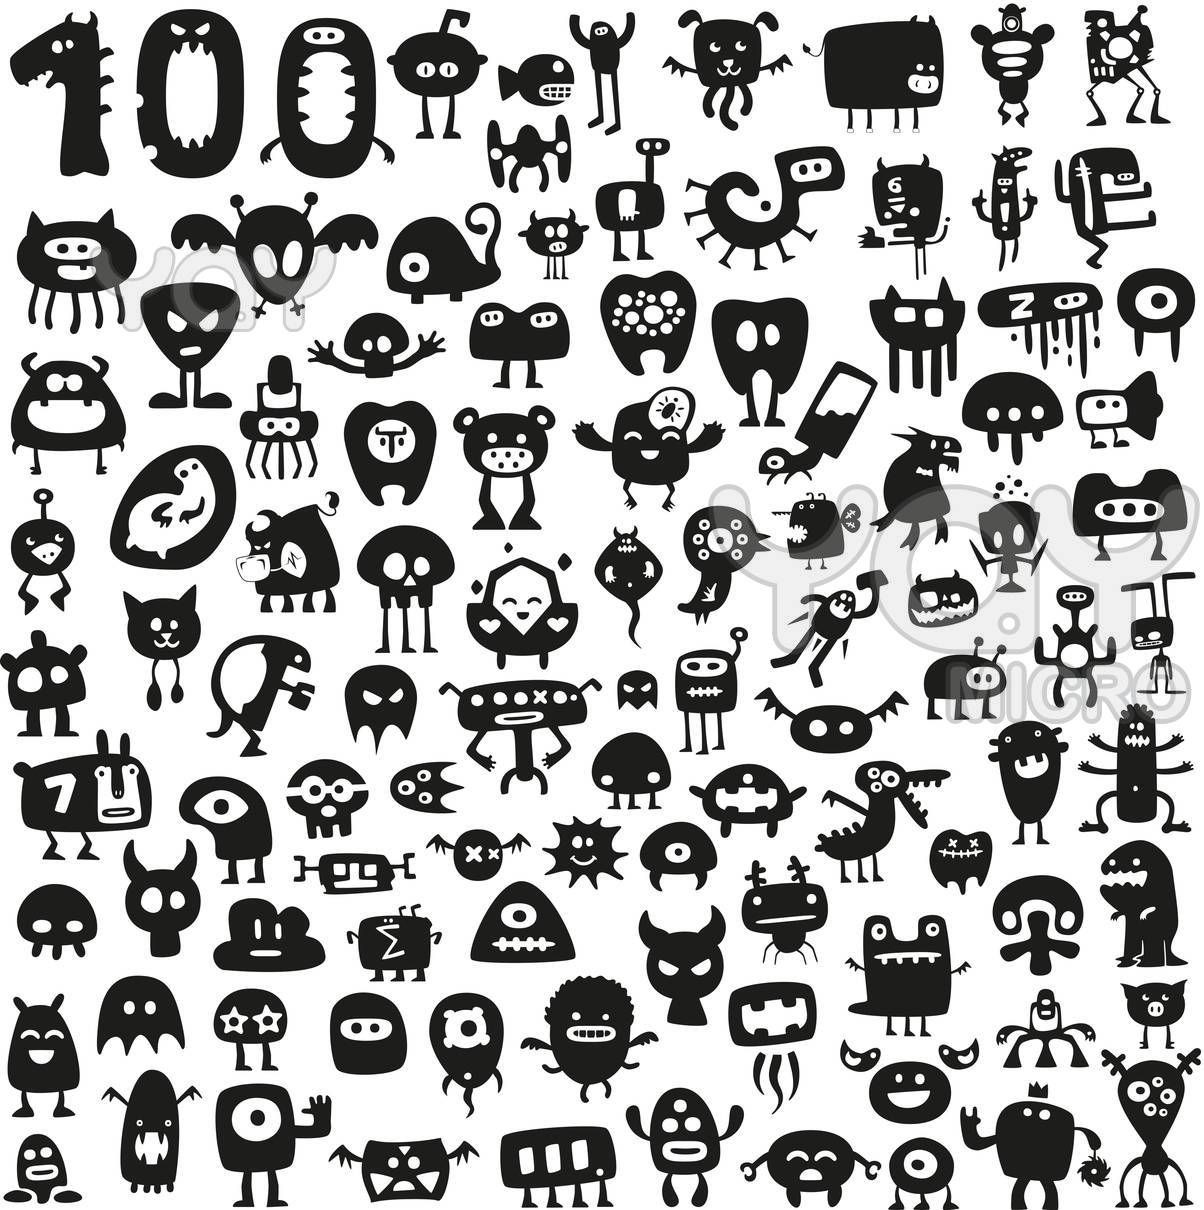 100 Funny Monsters Funny Monsters Monster Stickers Doodle Characters